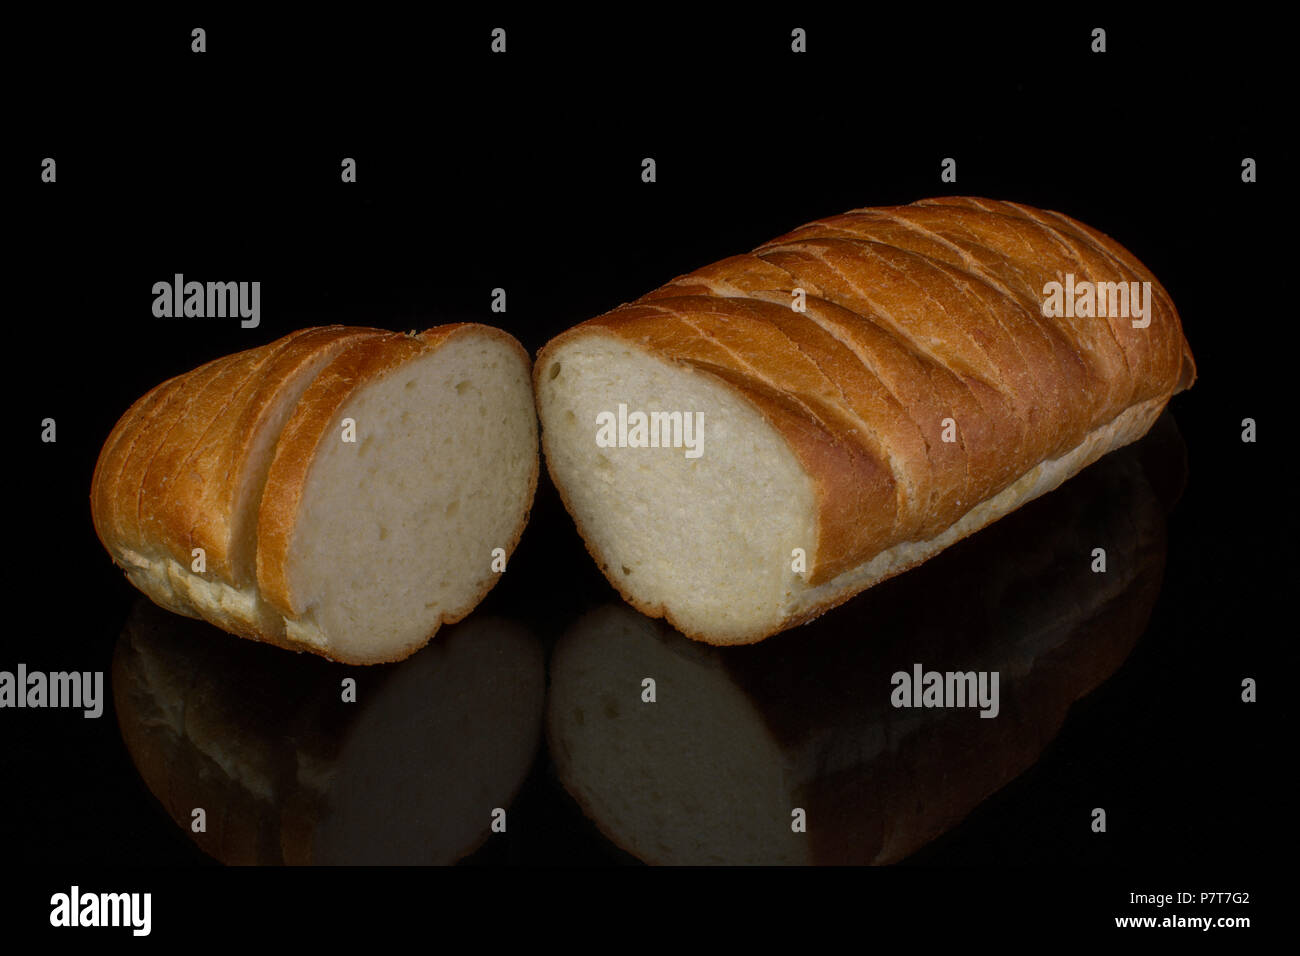 Ordinary white loaf on a black background Stock Photo